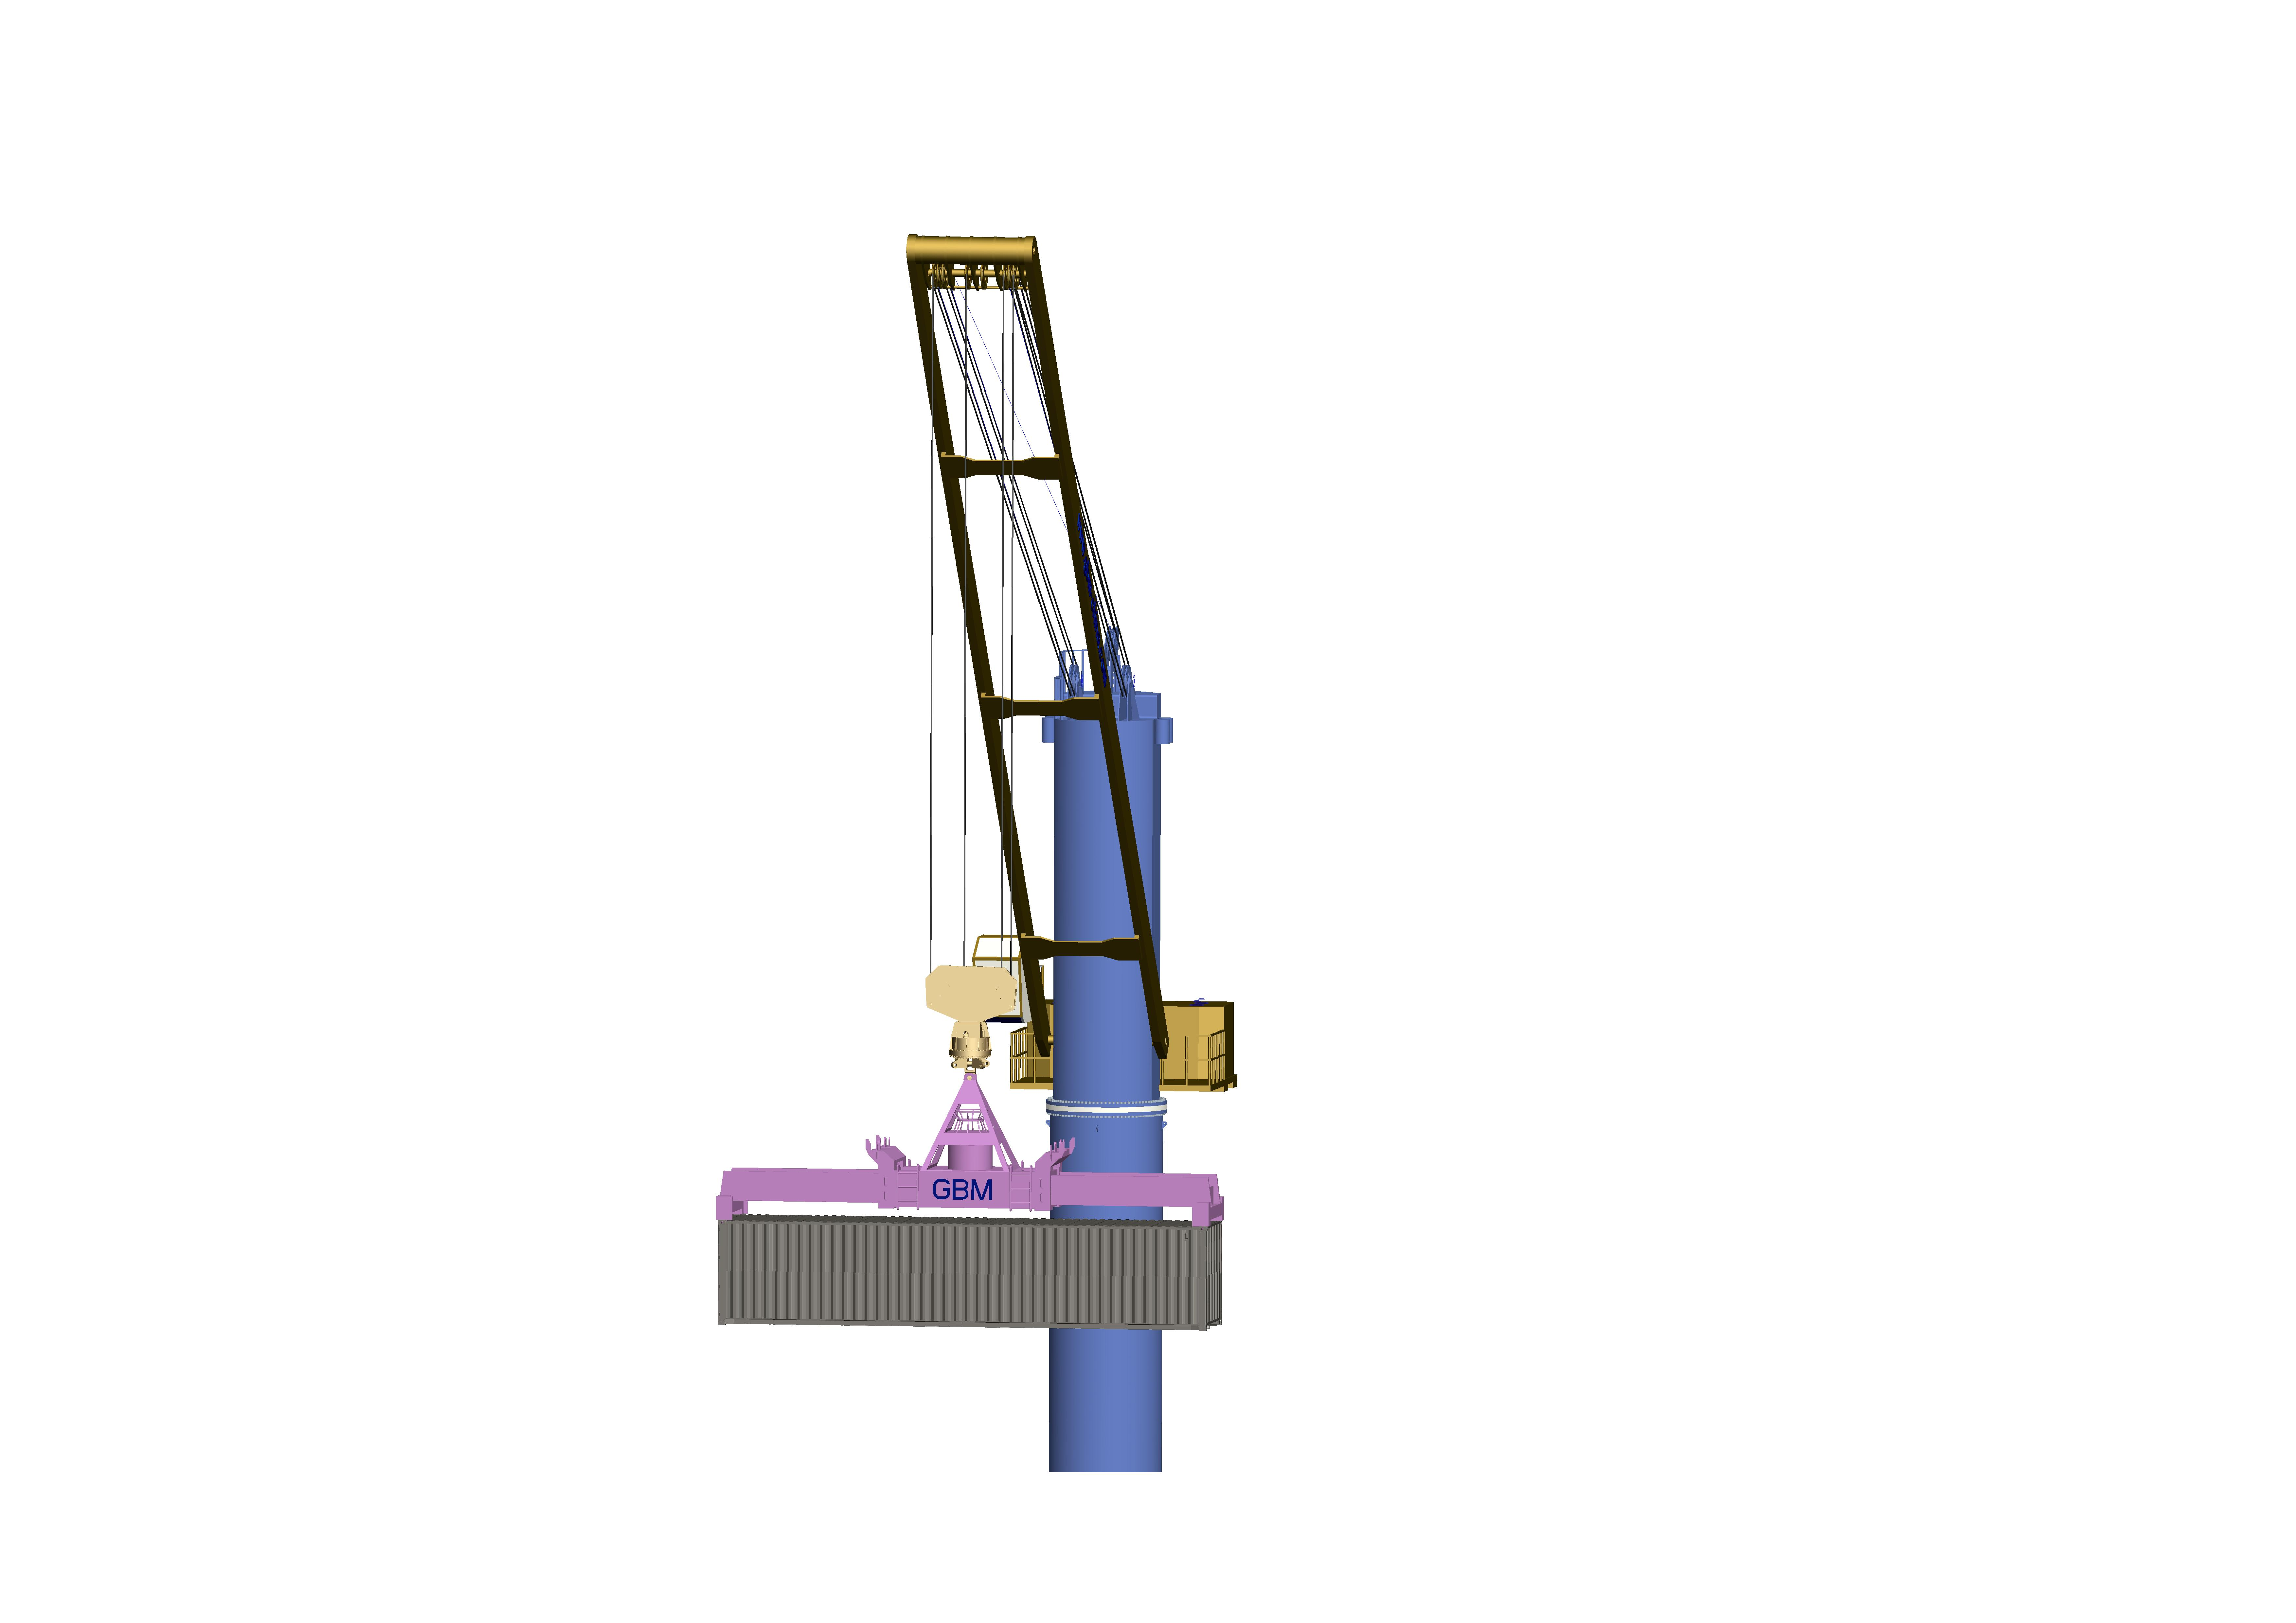 Deck crane with power swivel spreader Featured Image